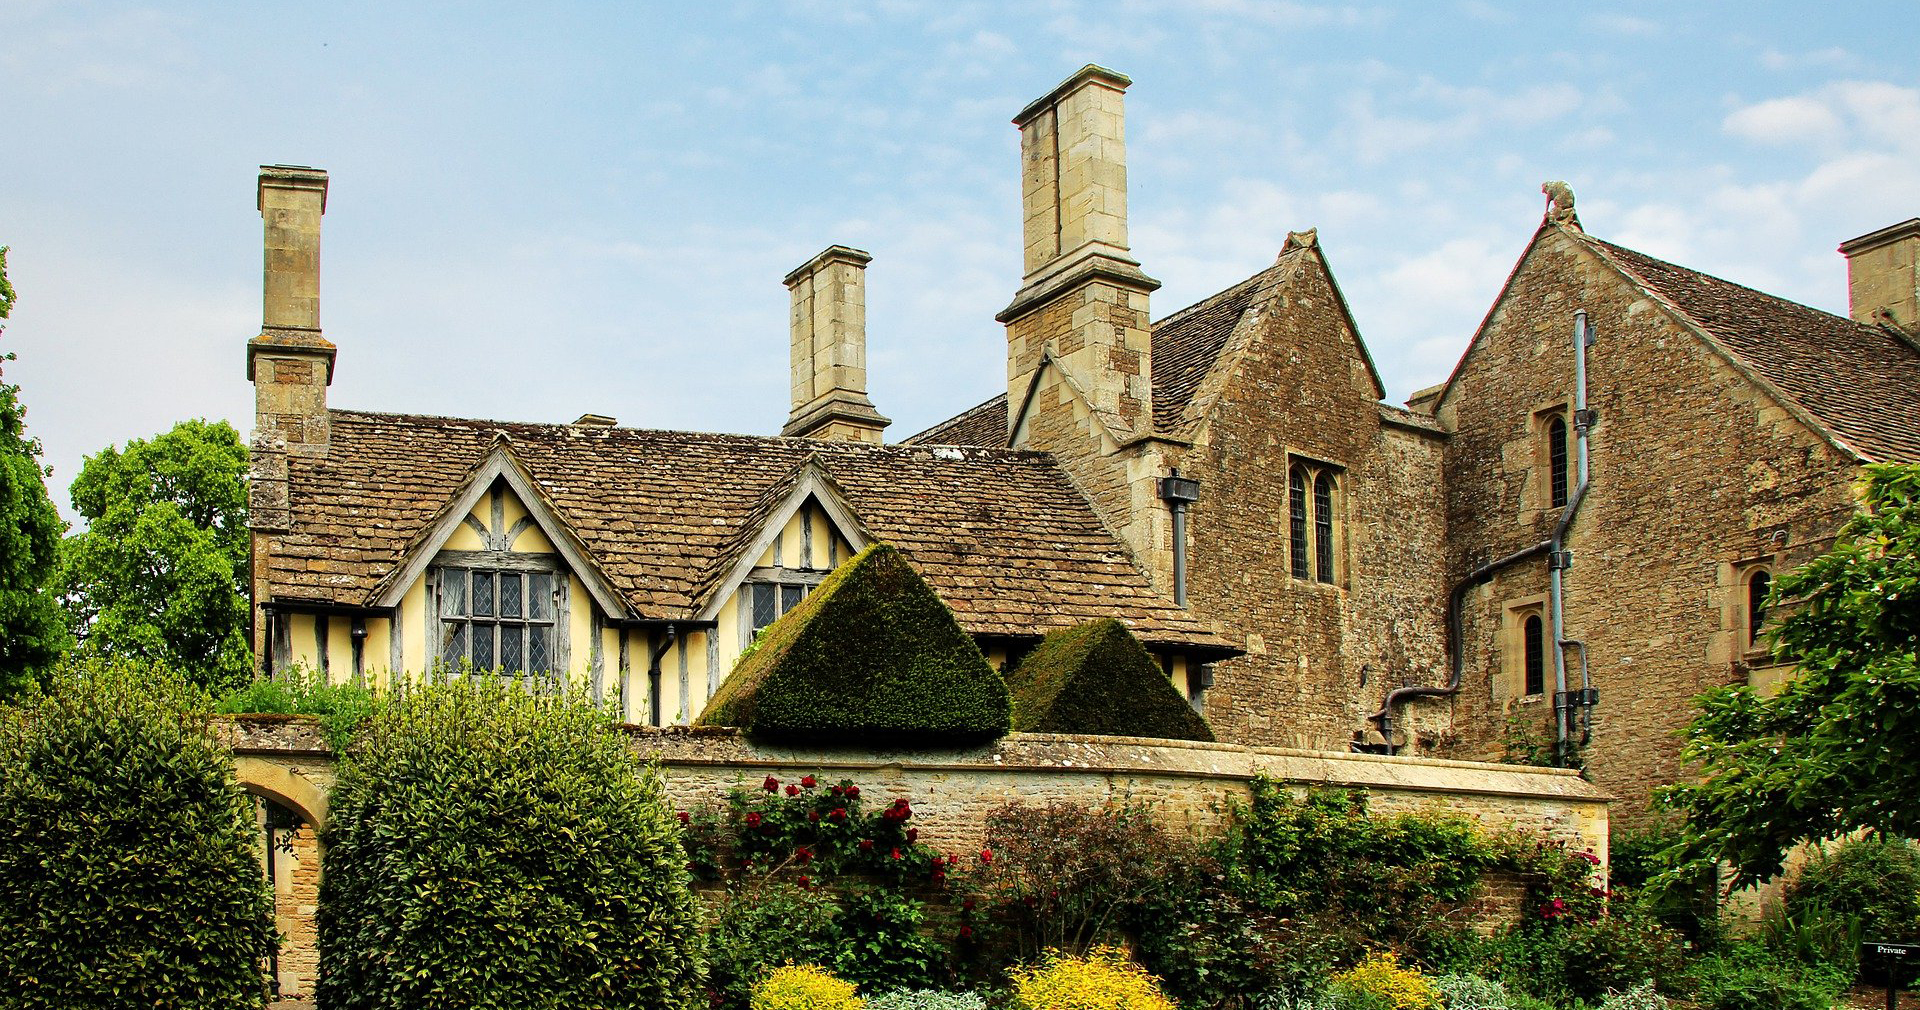 Grade 2 listed building Great Chalfield Manor House